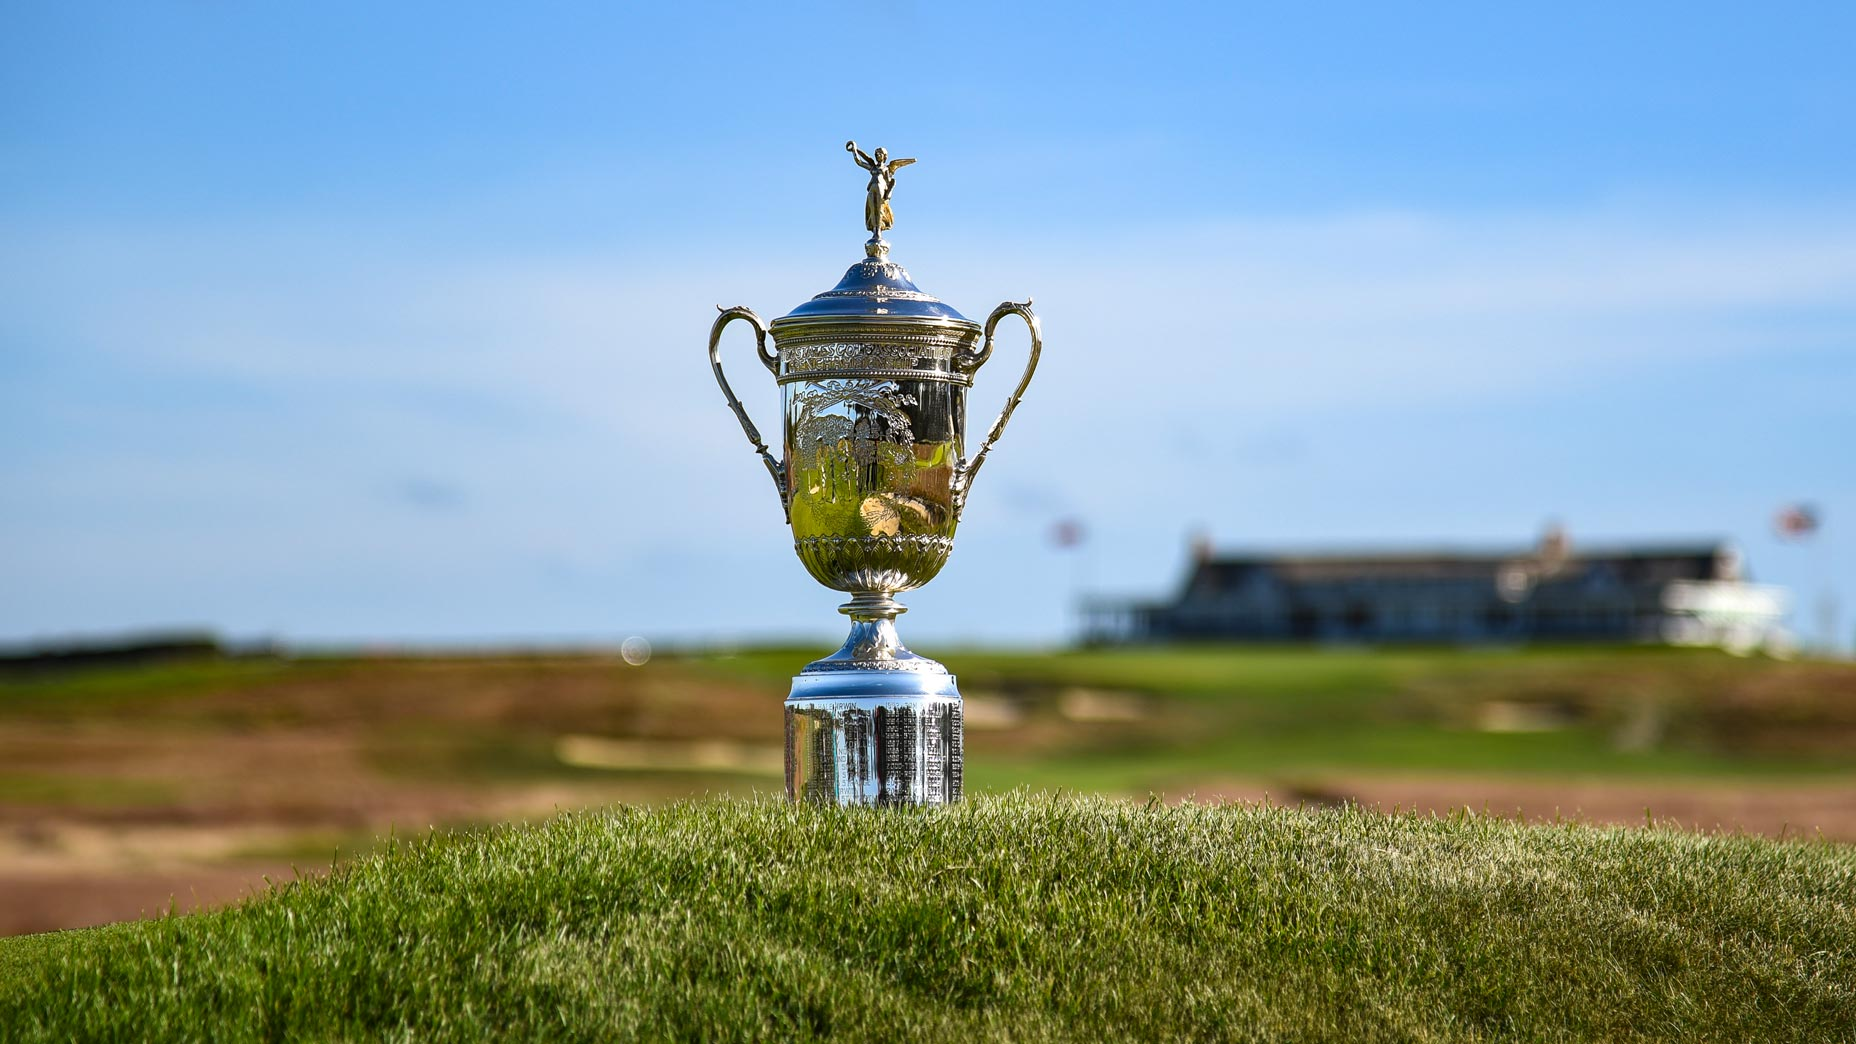 The 2021 U.S. Open and U.S. Women's Open will feature open qualifying.